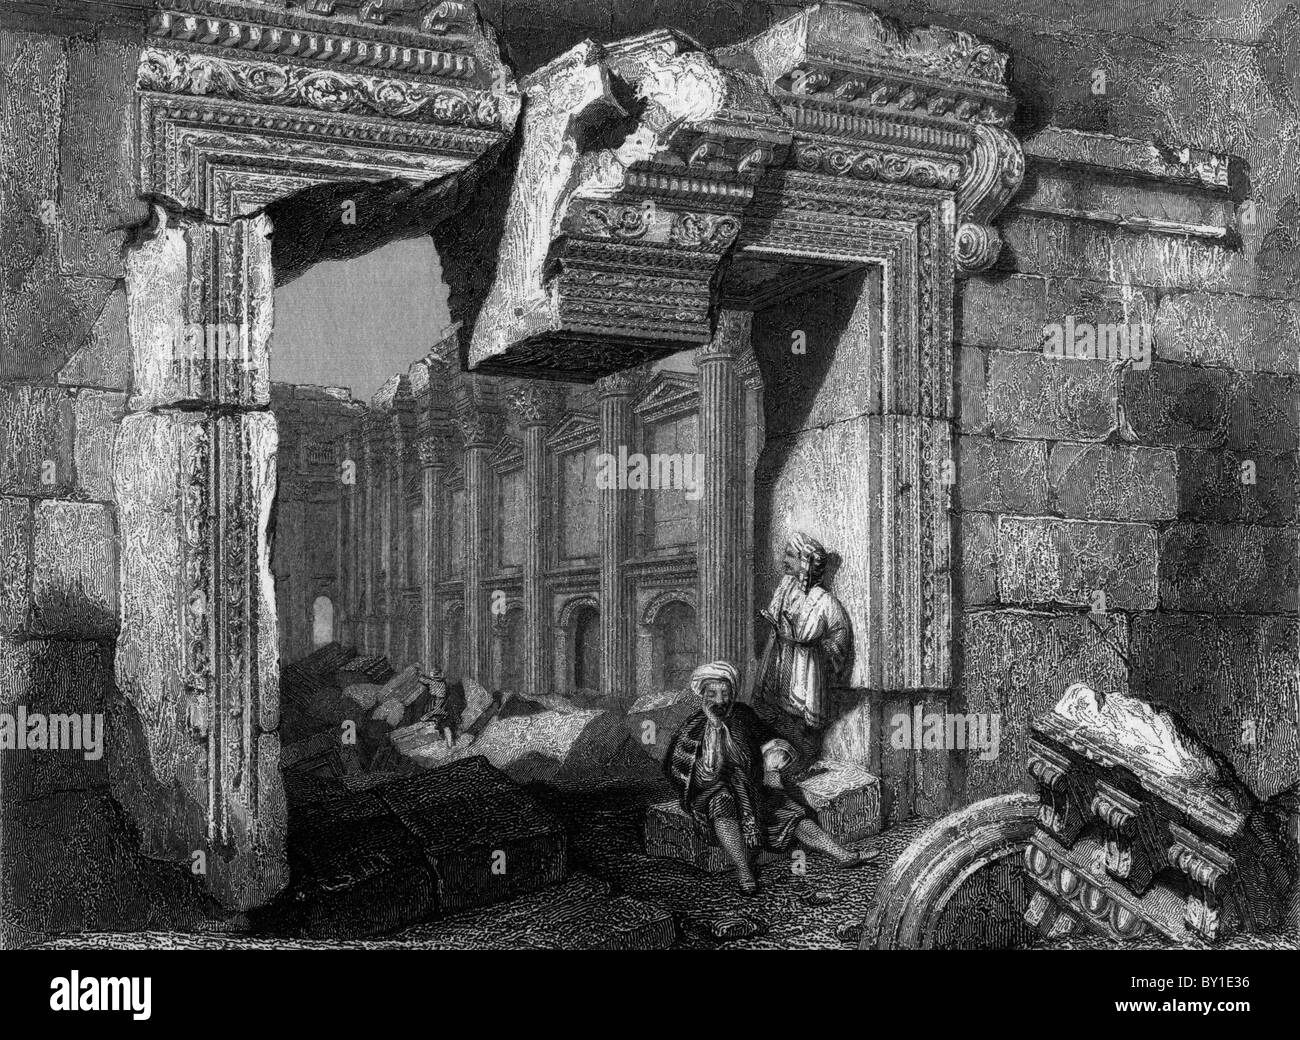 The Gate at the Temple of Jupiter, Baalbec, Lebanon; 19th century Black and White Illustration; - Stock Image